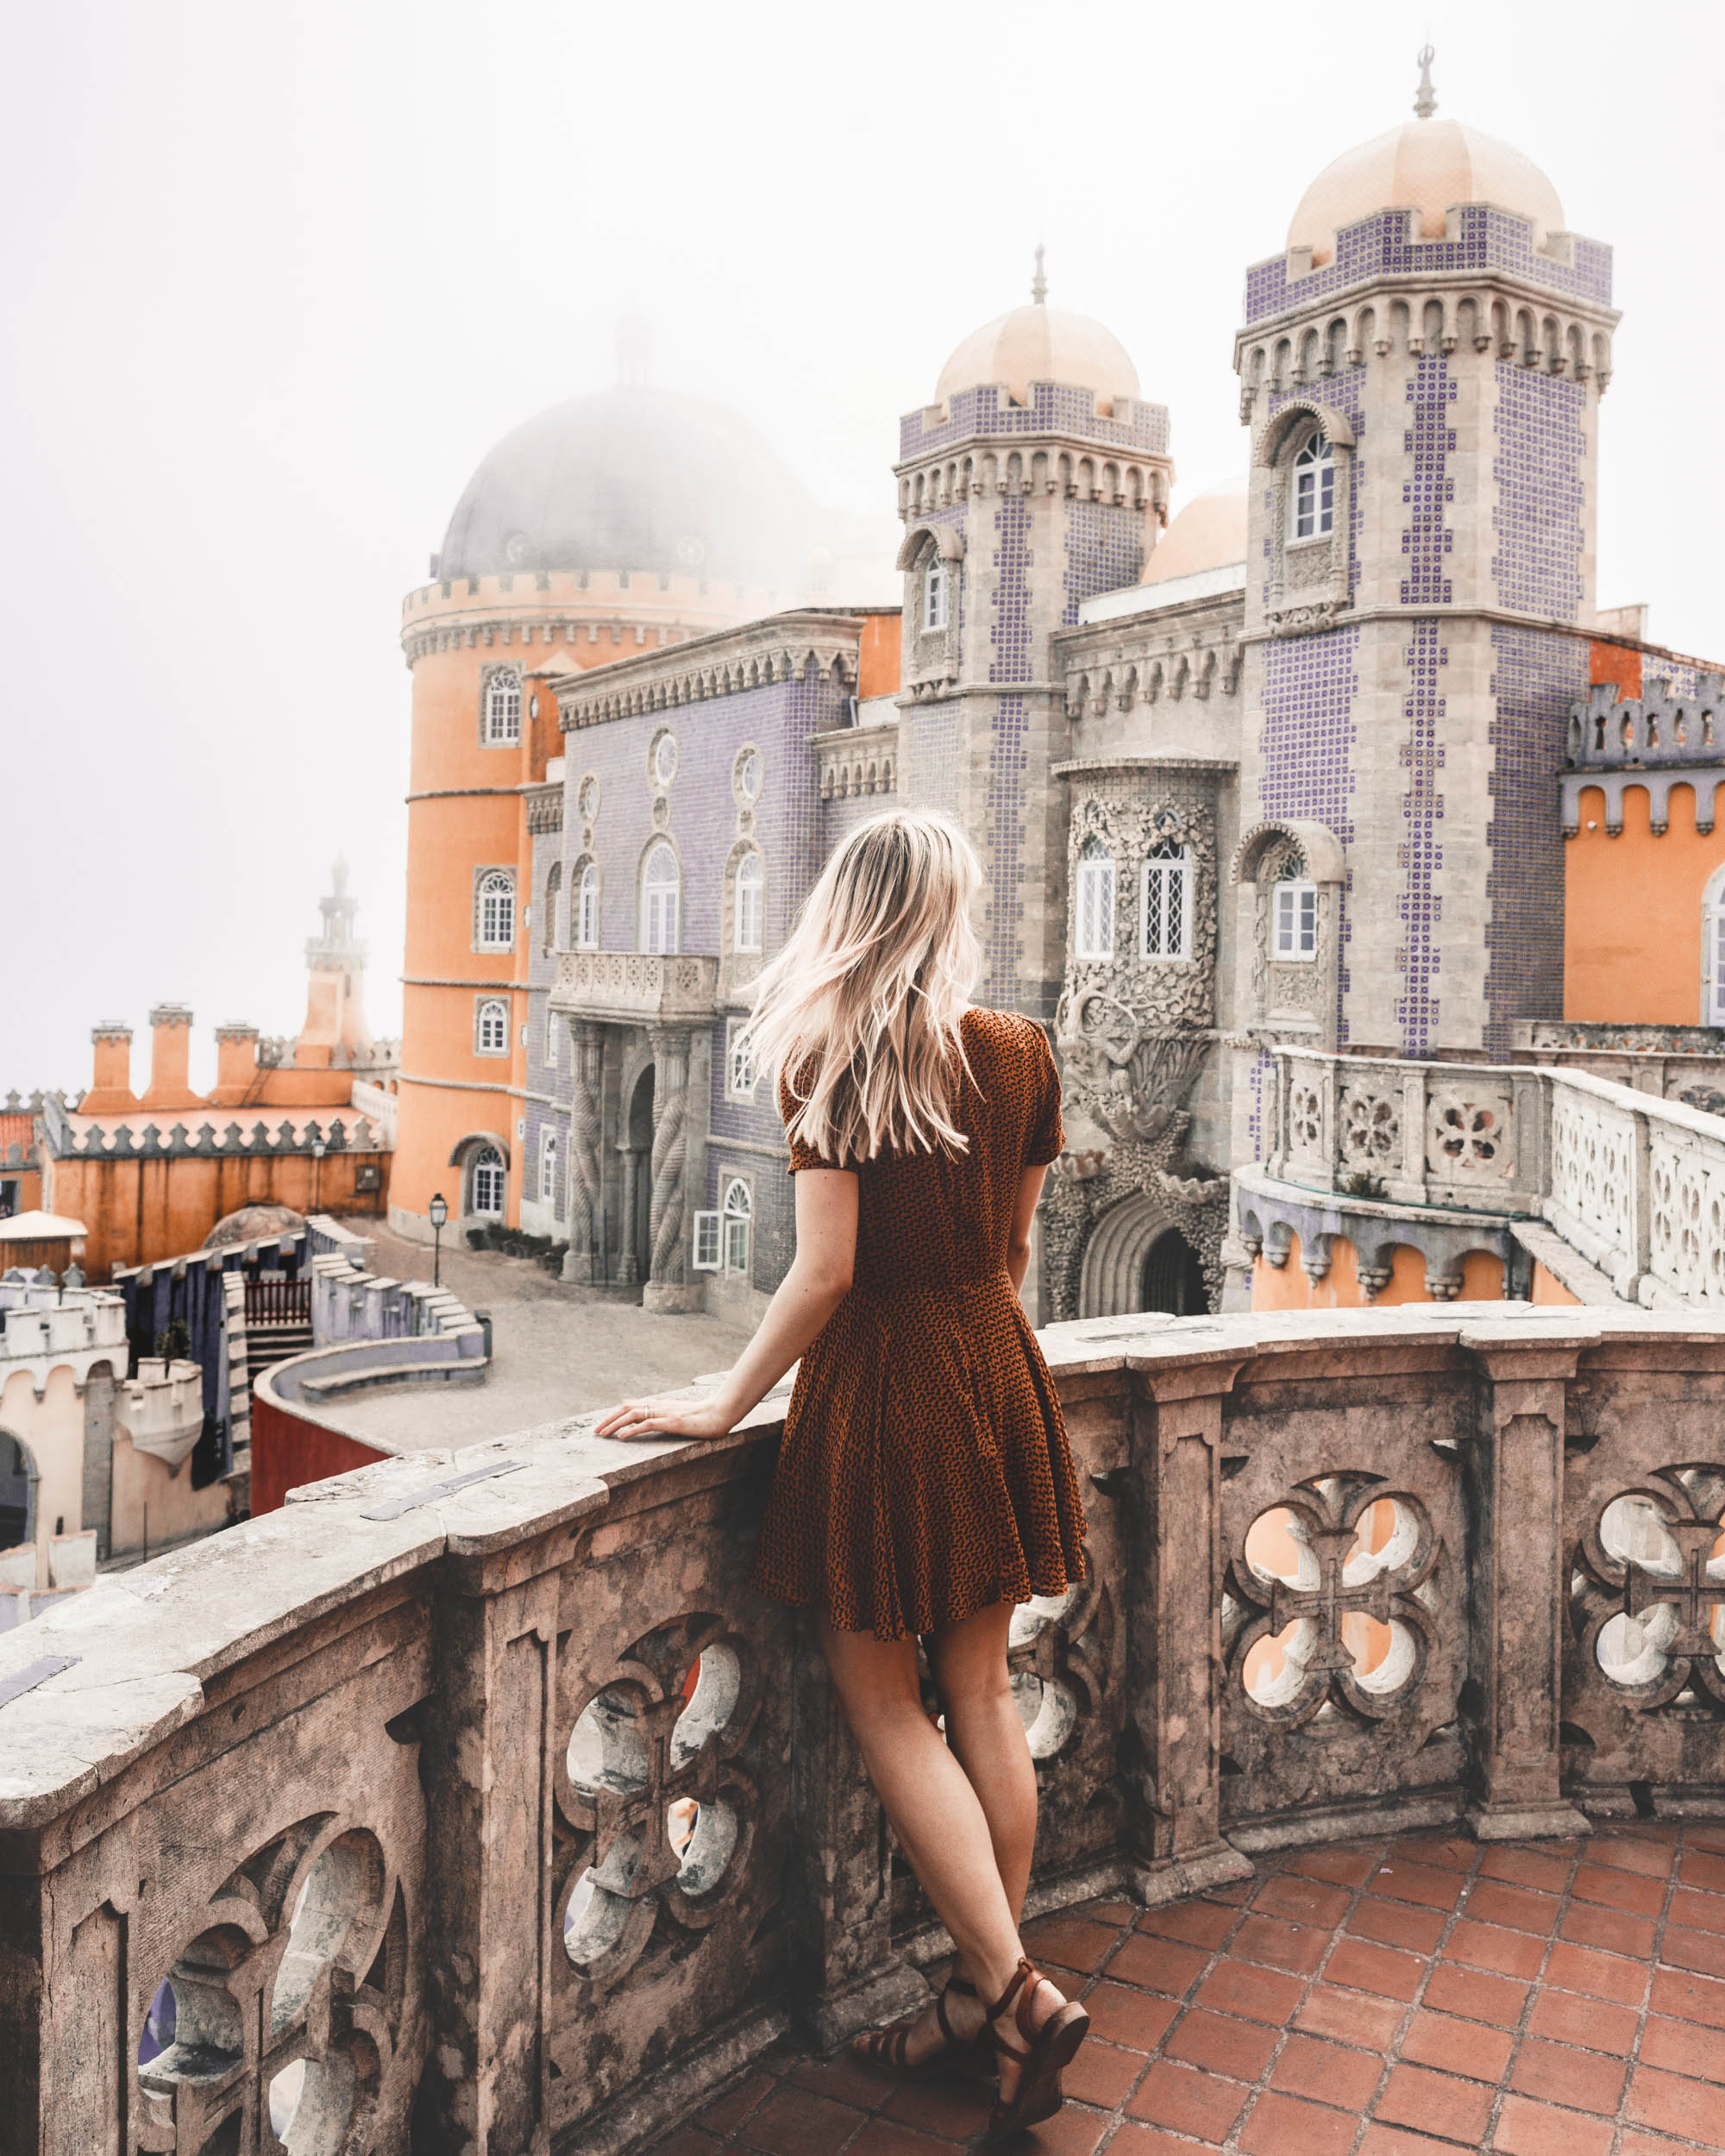 Pena Palace castle photo spot in Sintra Portugal via @finduslost